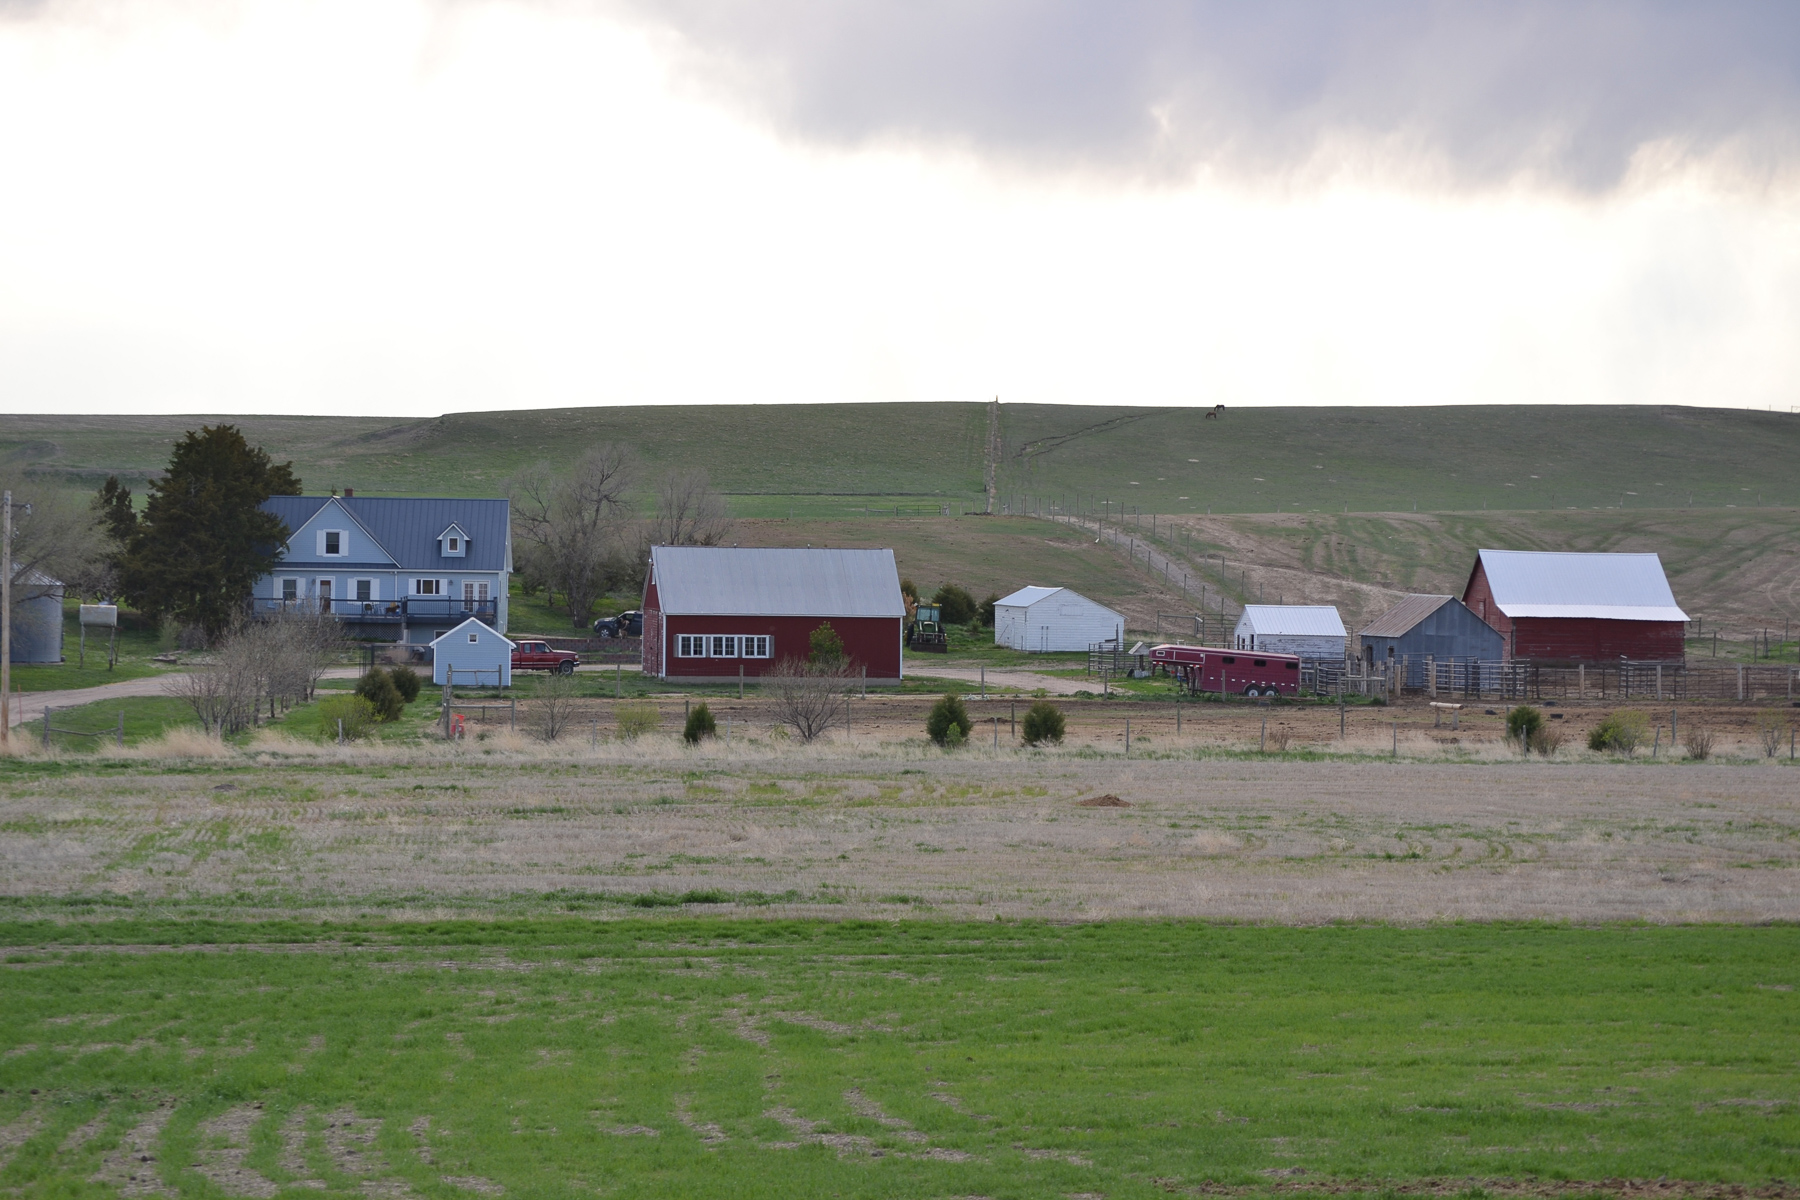 Nebraska Land for sale with home and outbuildings